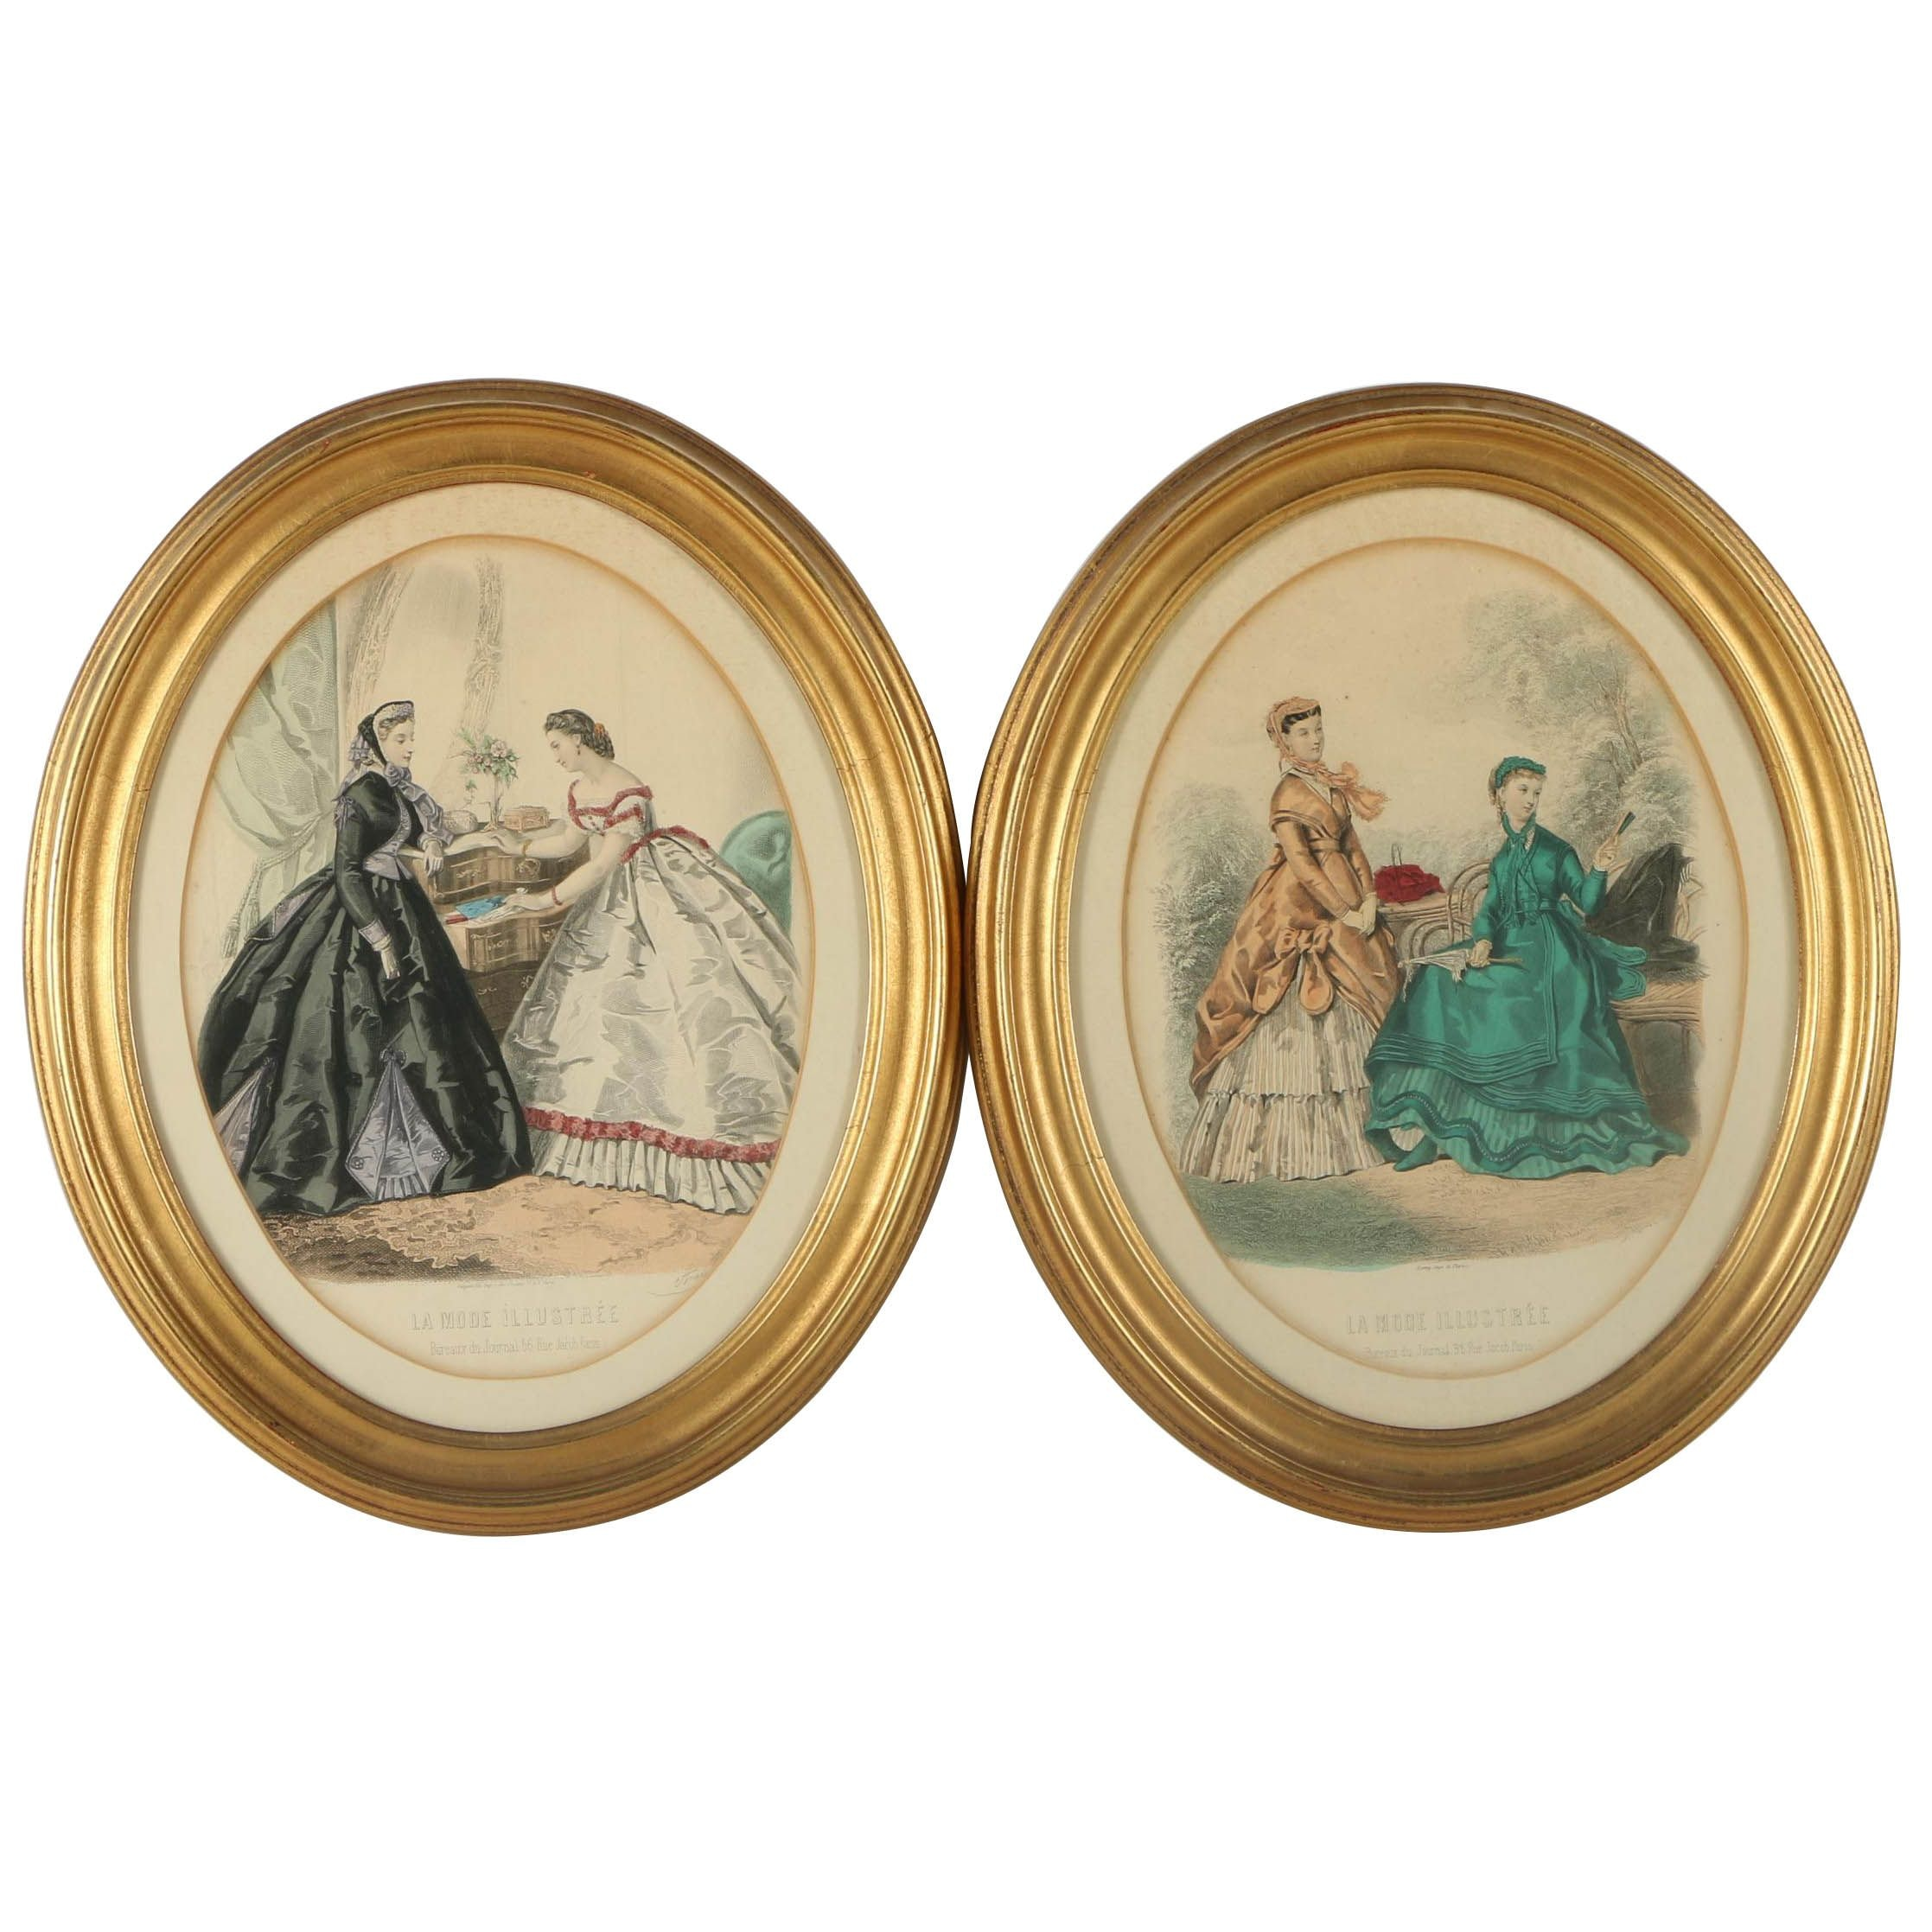 "Antique Hand Colored Engravings of Fashion Plates from ""La Mode Illustrée"""